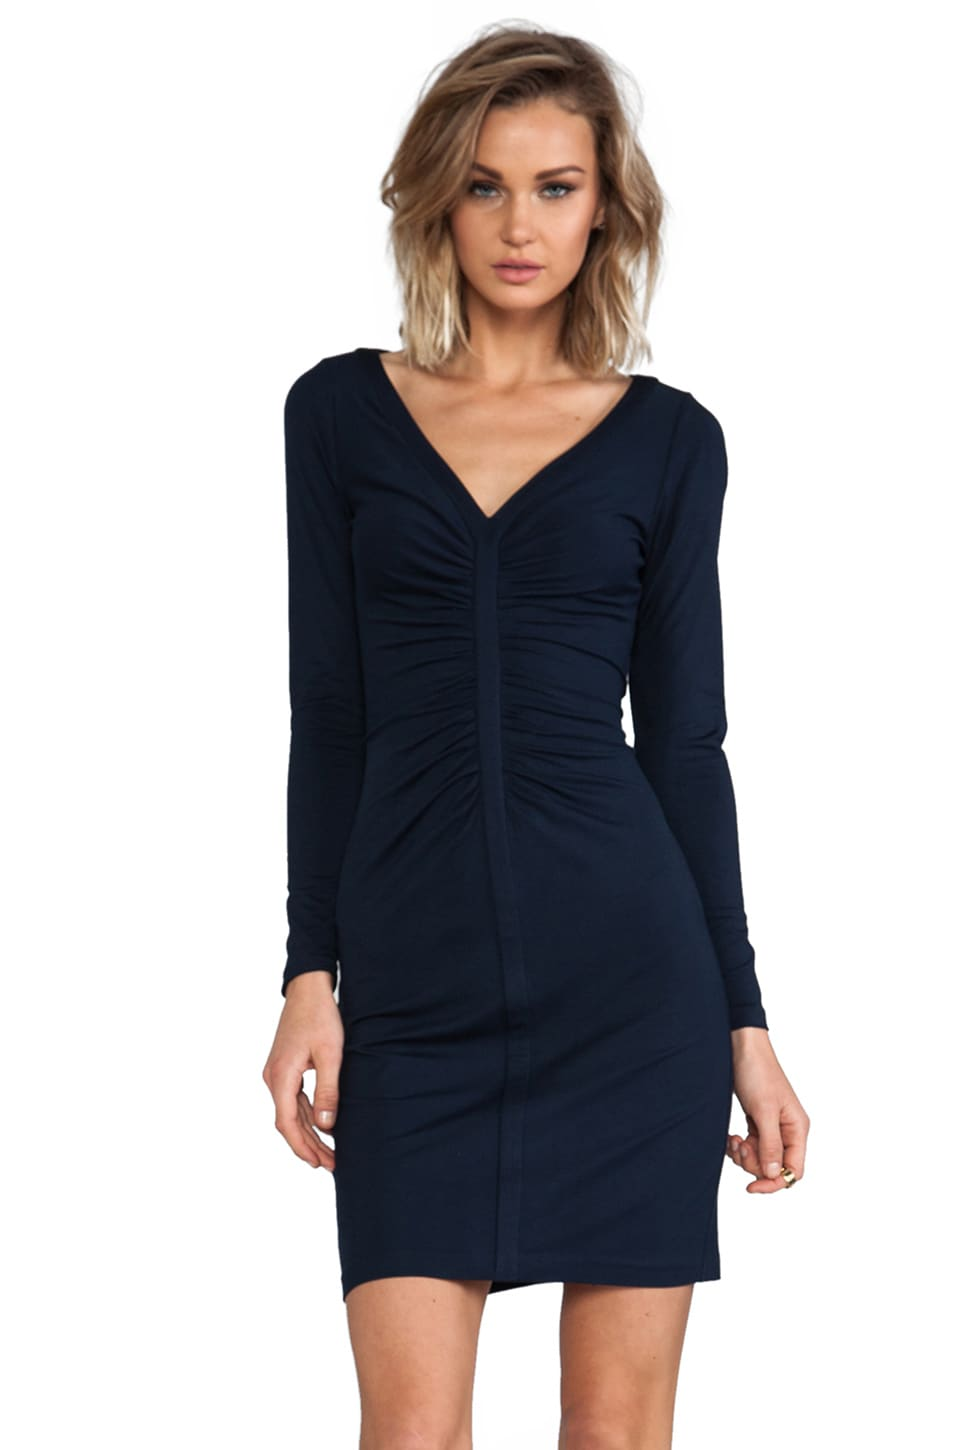 Diane von Furstenberg Greece Dress in Admiral Navy